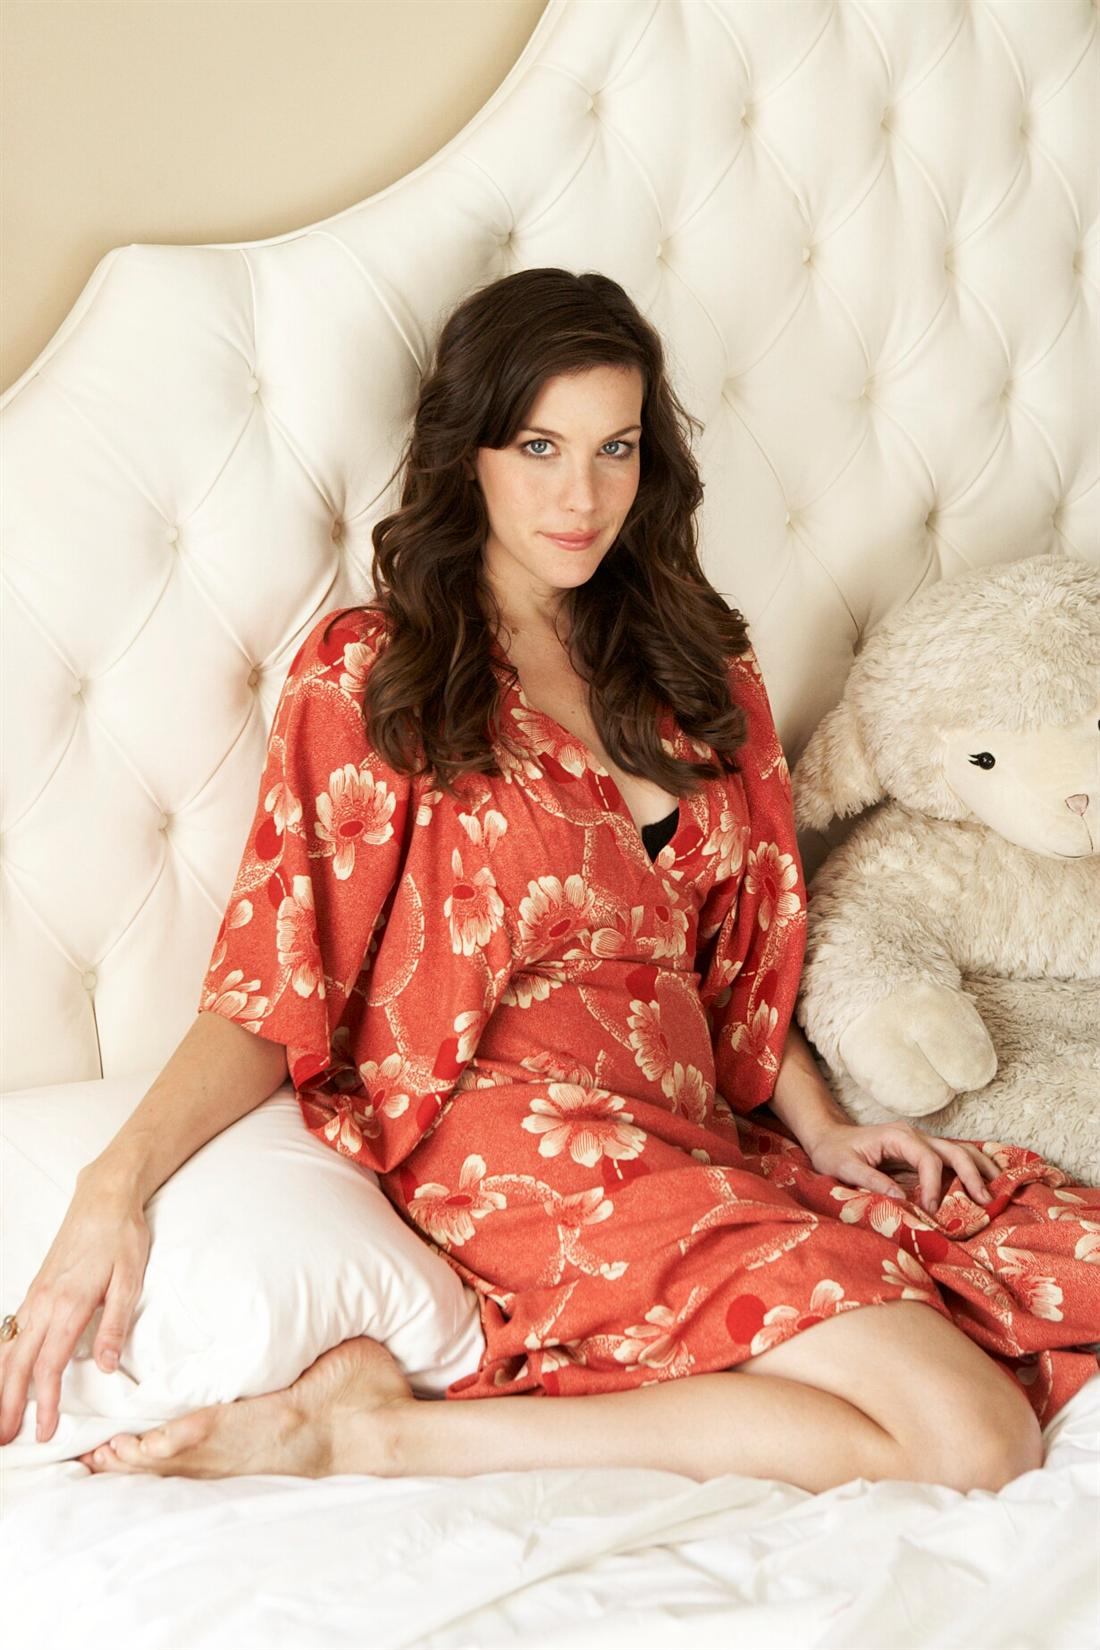 Le donne di Plutonia: Liv Tyler – Plutonia Publications